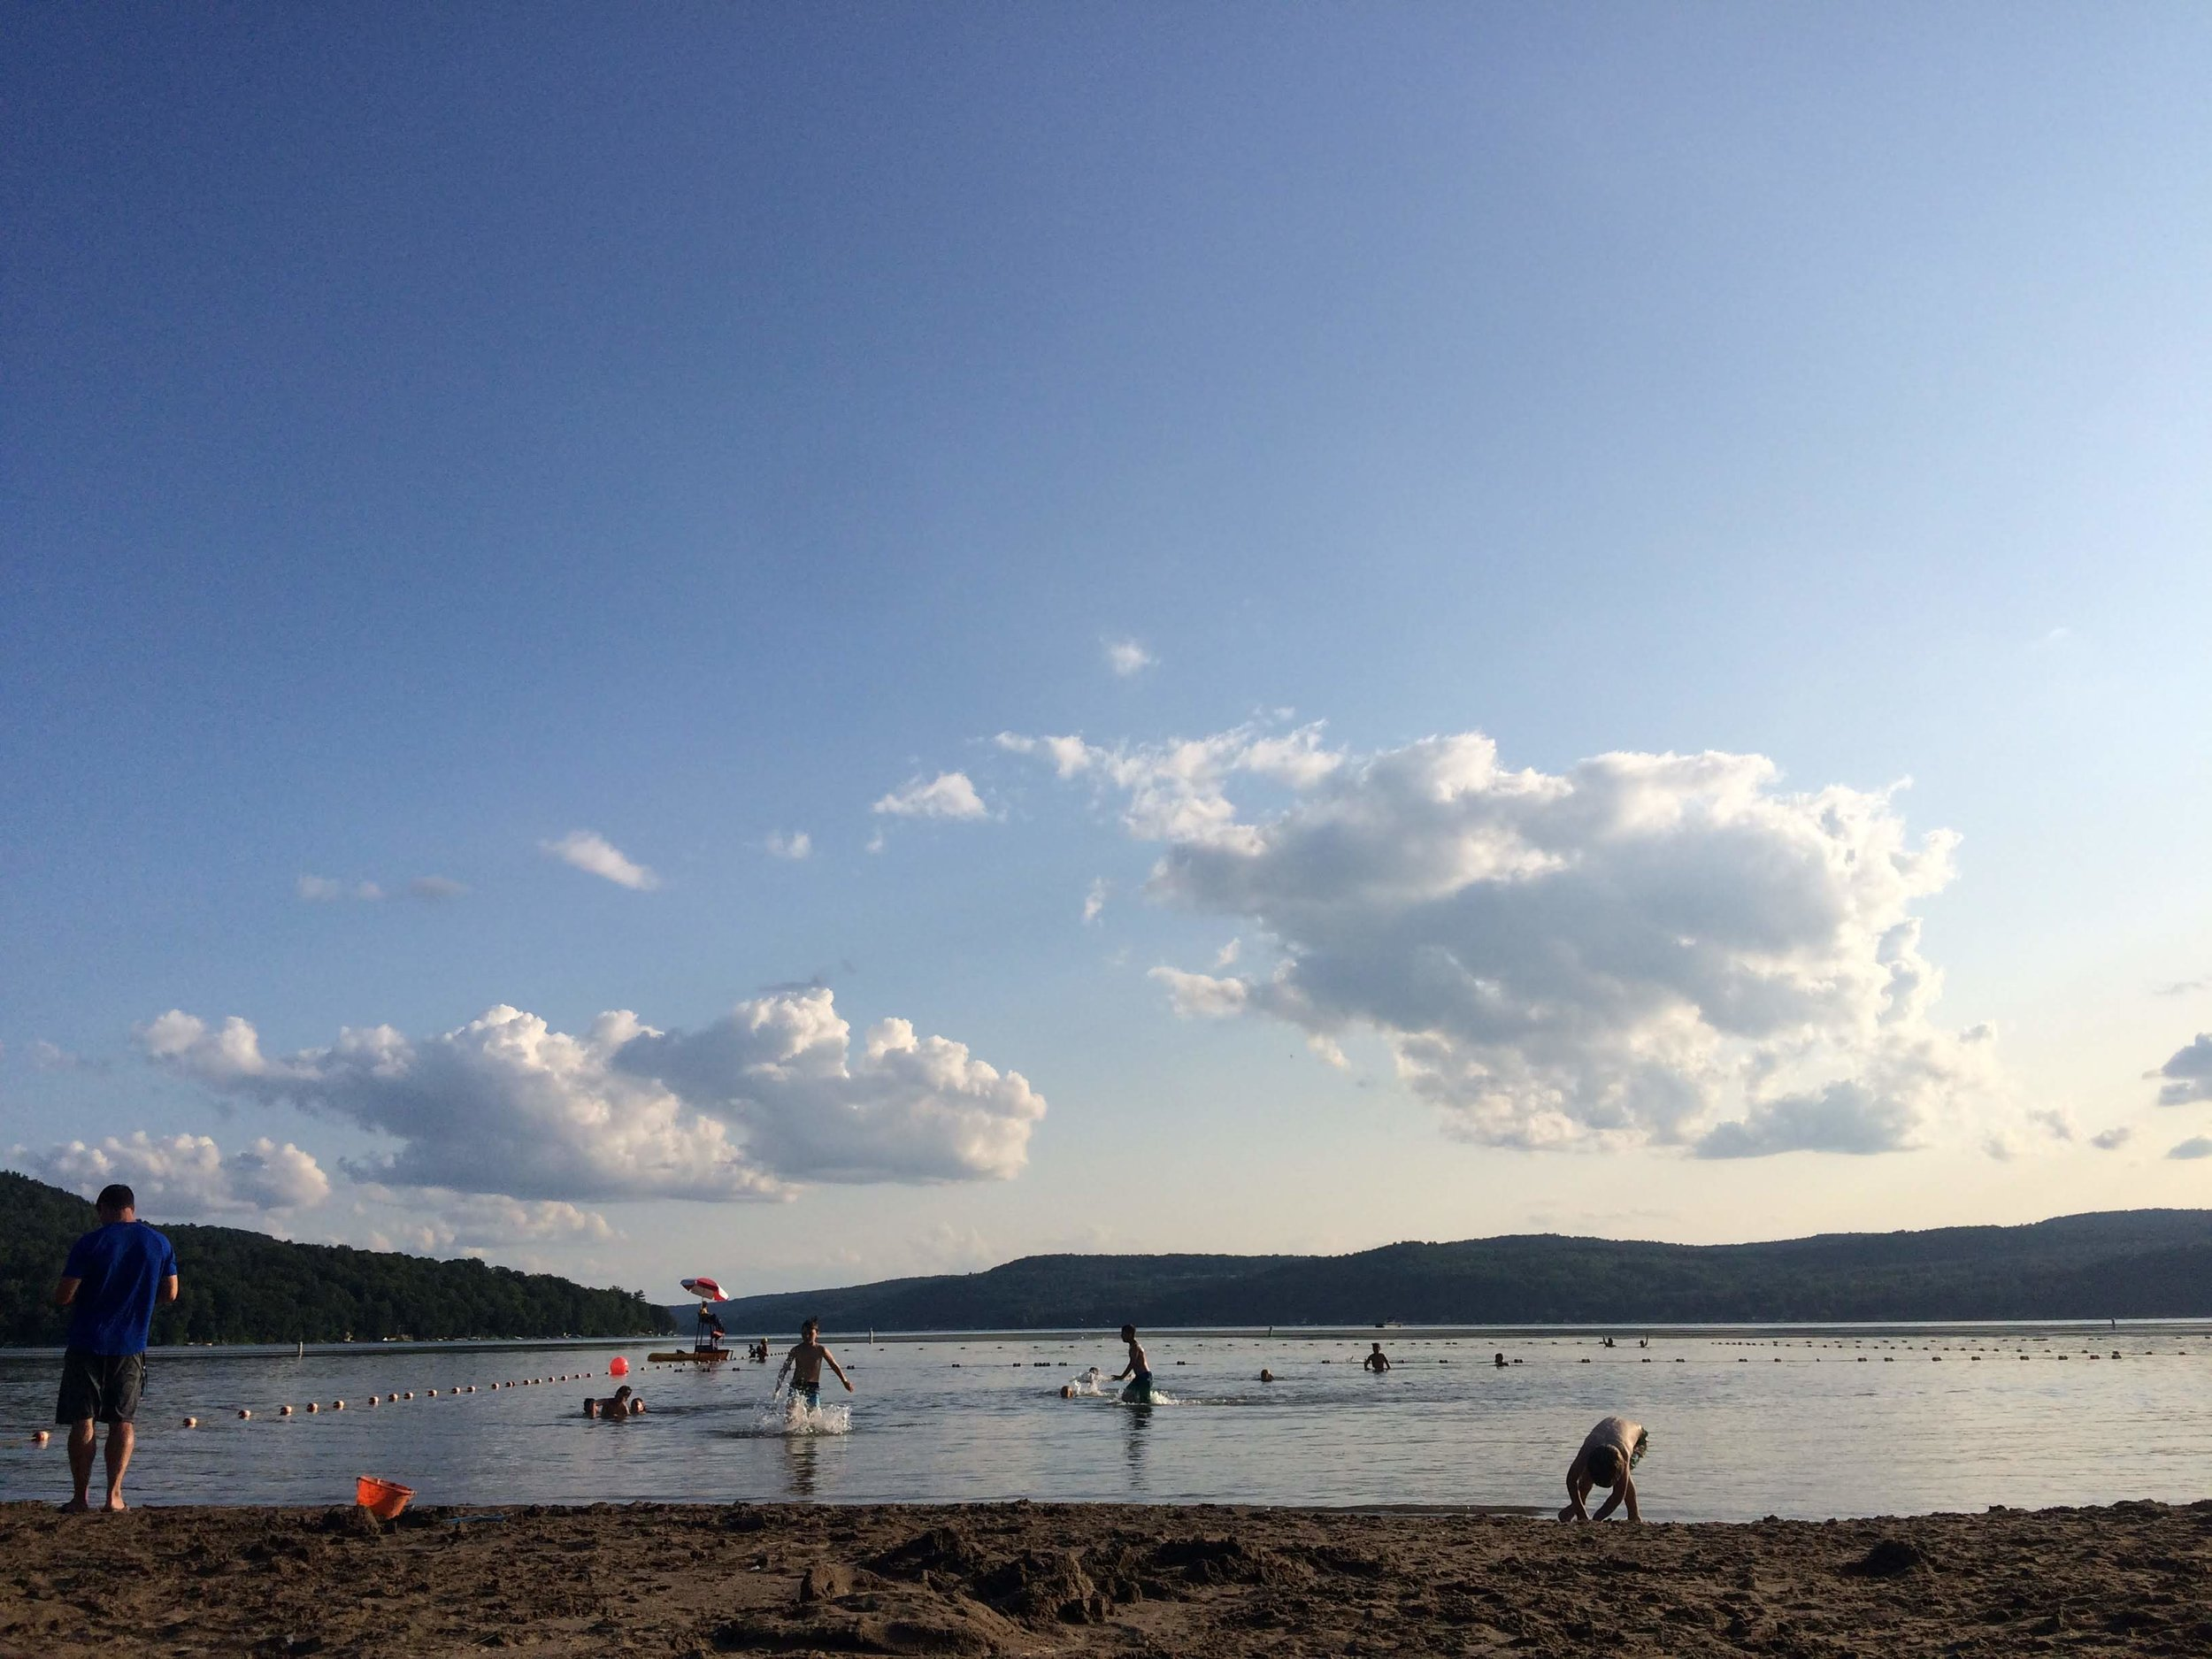 Our last camping spot, Glimmerglass State Park in Ny - kinda sad. But I think we are both done, ready to get home!